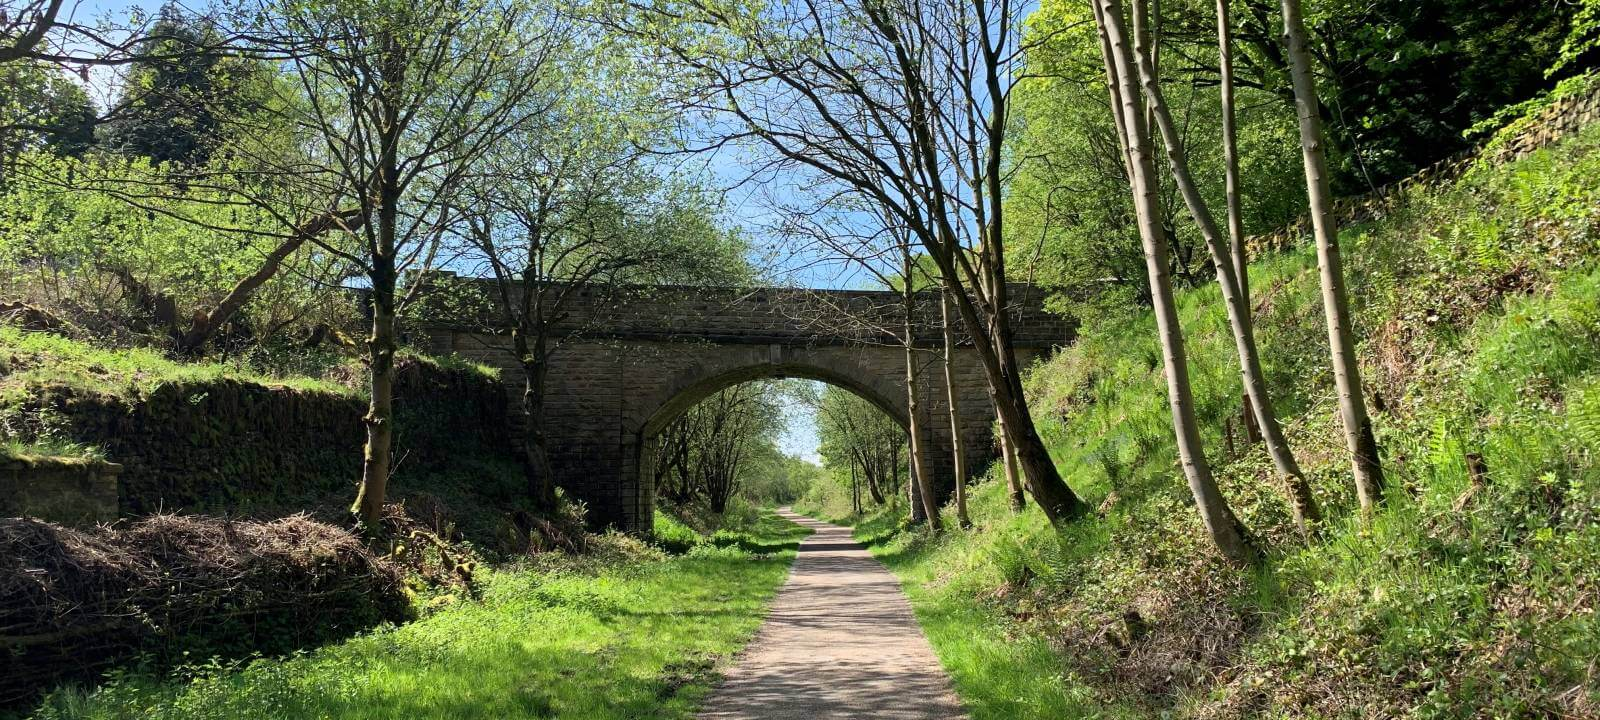 Try these walking routes in South Yorkshire